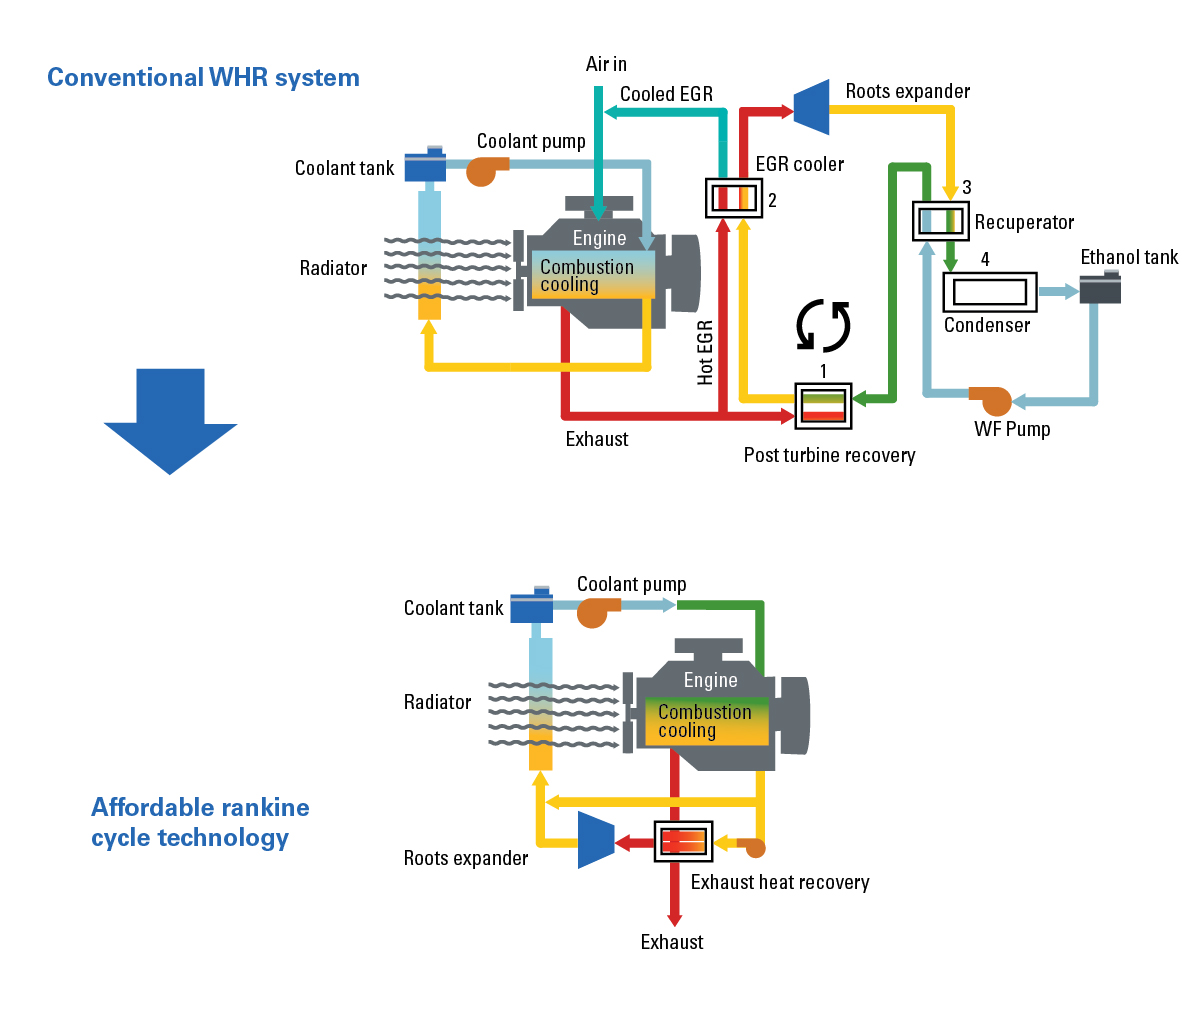 Eaton Rankine cycle technology